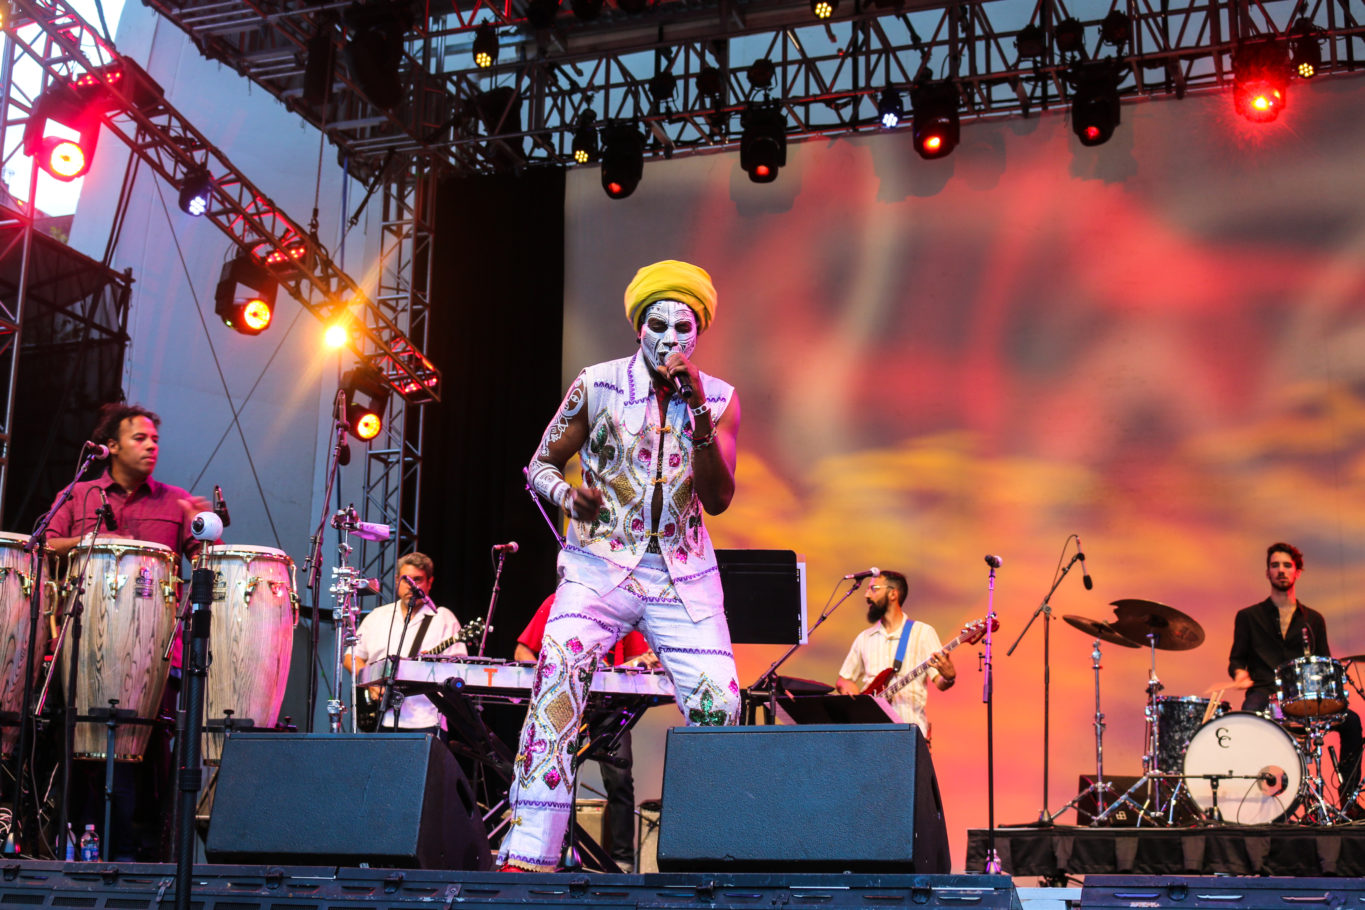 Music band Antibalas performing at the Okayafrica Afrobeat x Afrobeats show at Lincoln Center in NYC